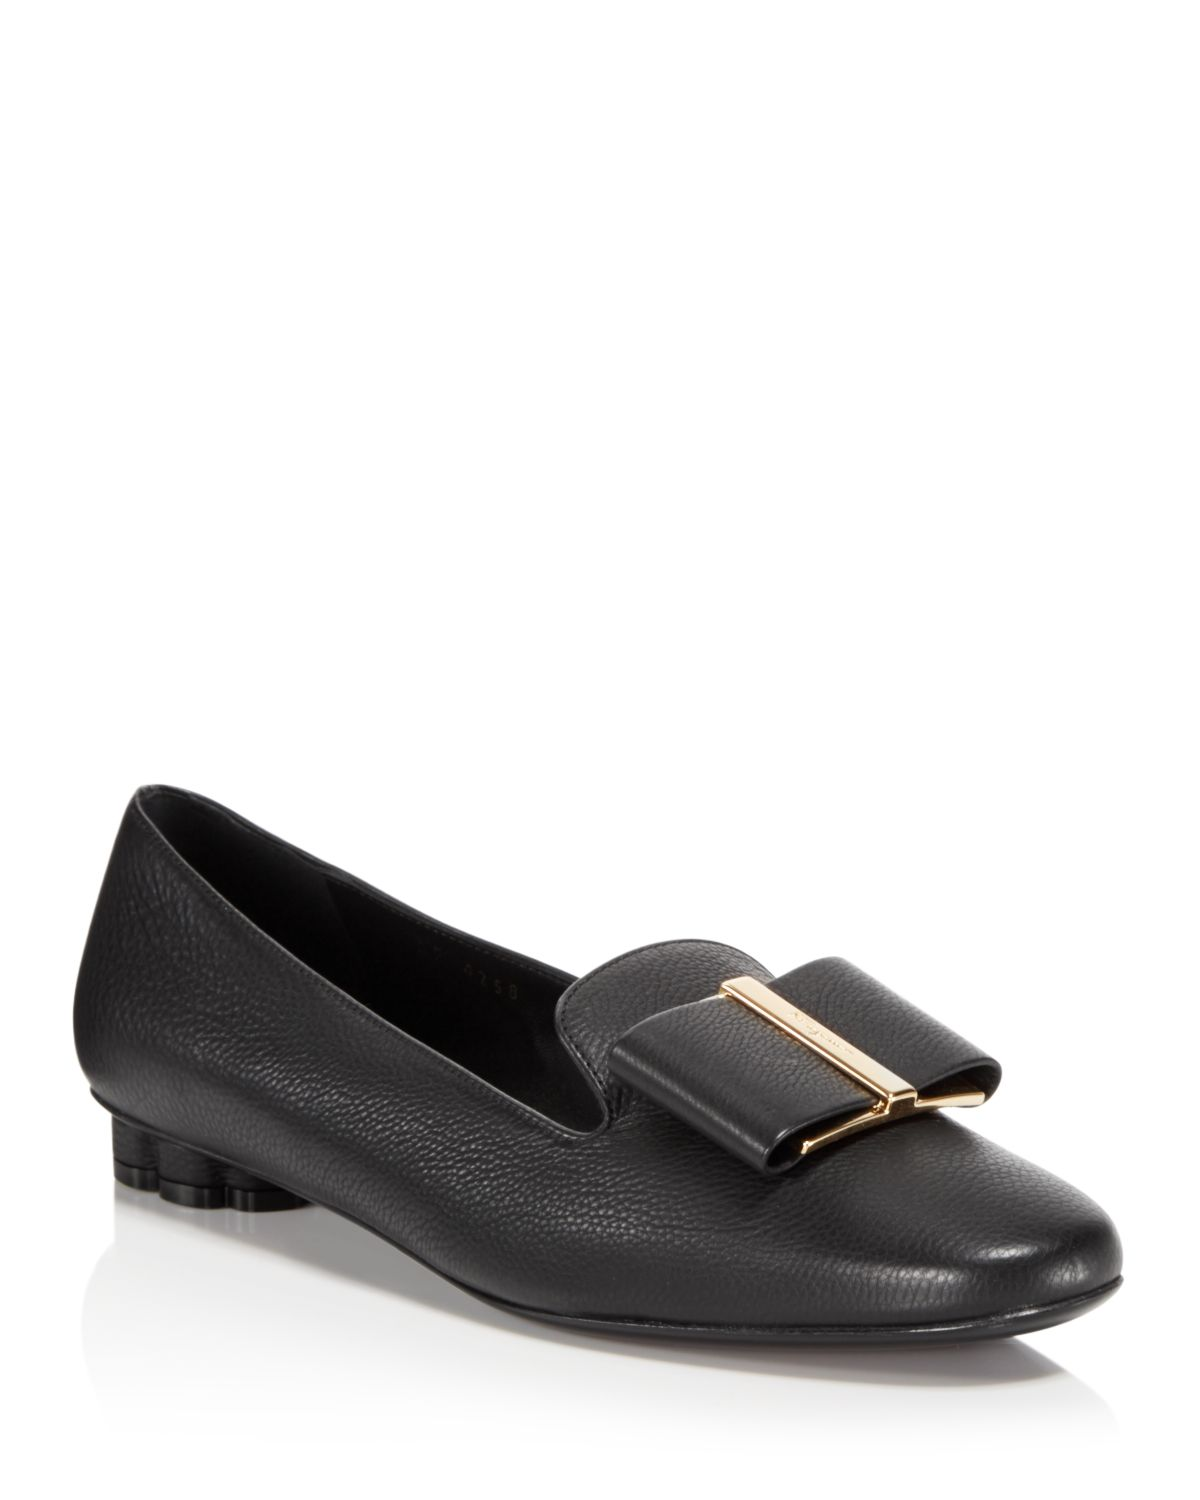 Salvatore Ferragamo Women's Bow Detail Leather Loafers